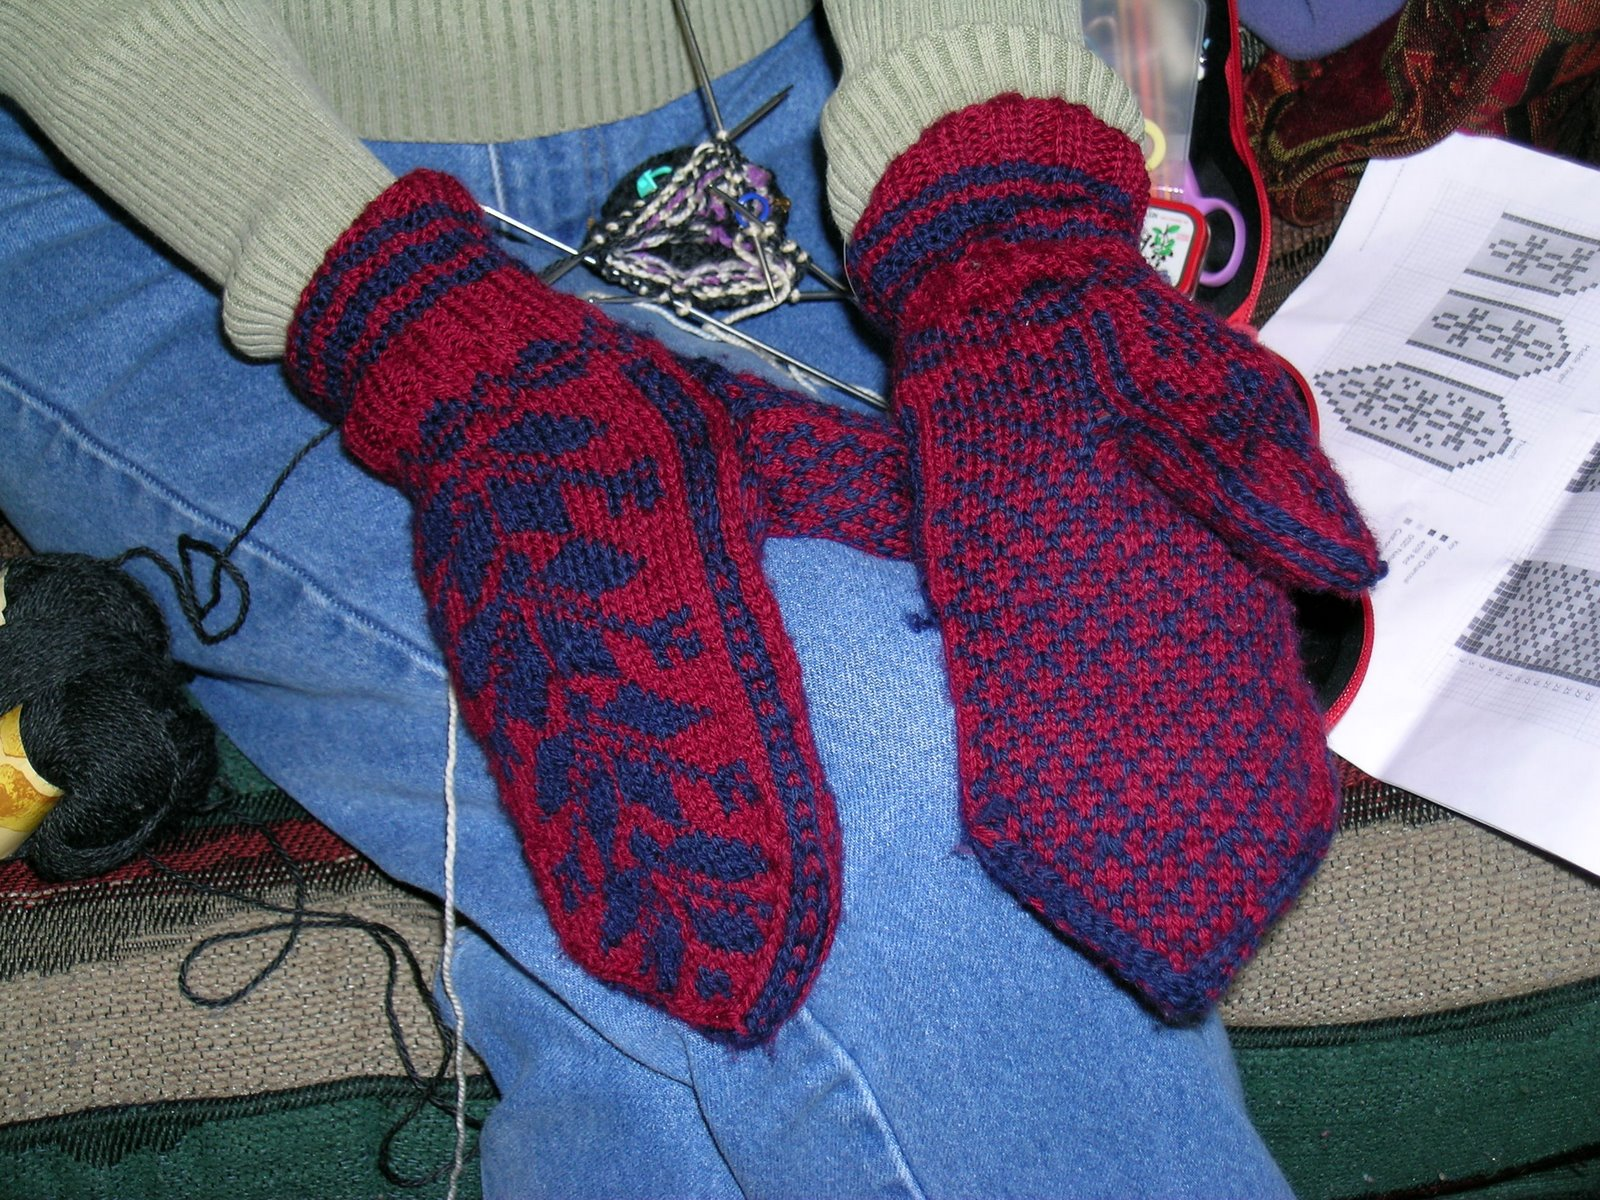 [knitting+11-08+Karen]